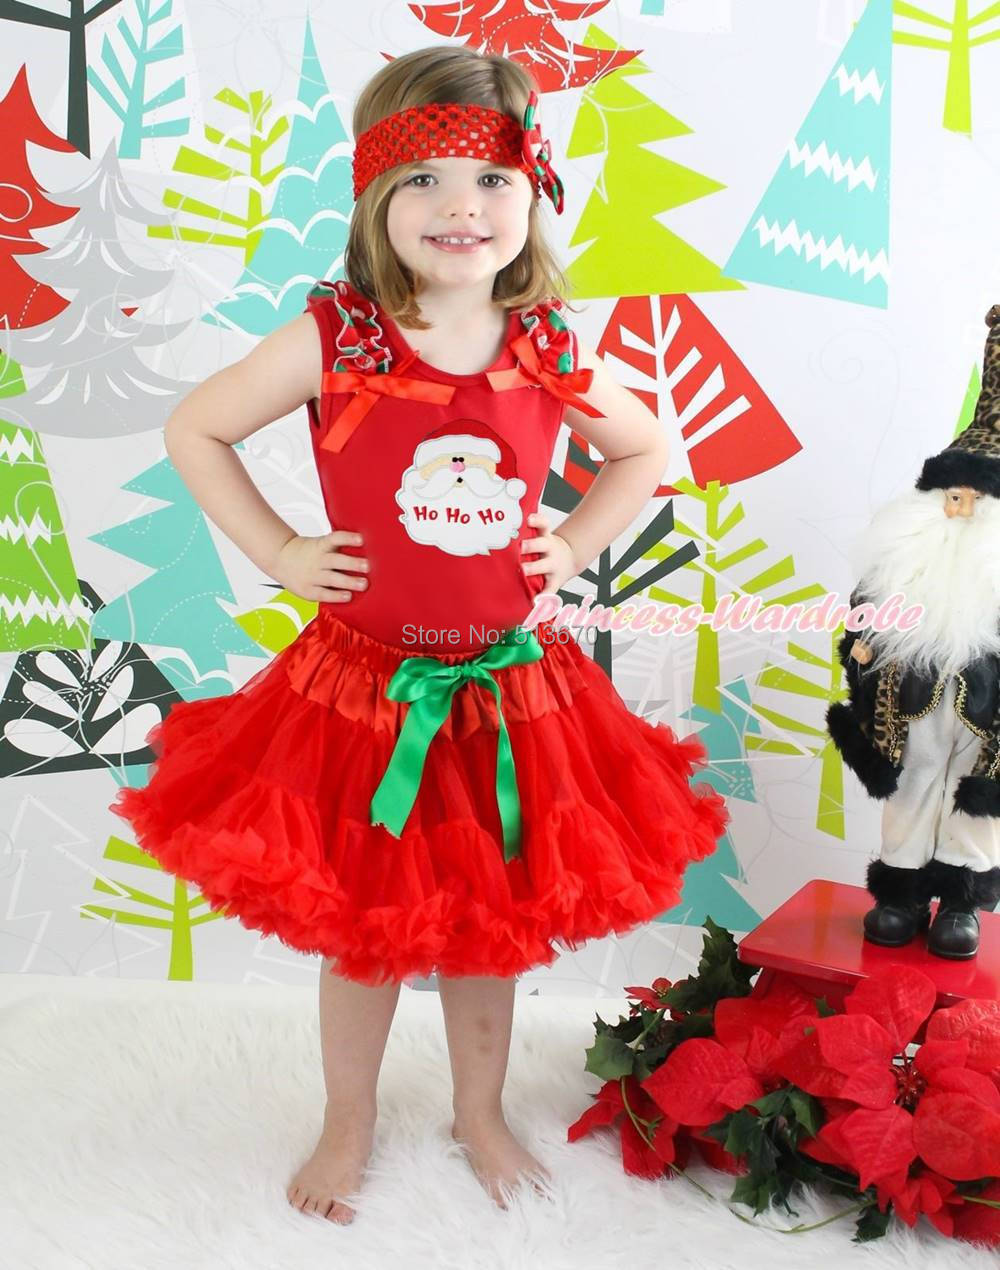 XMAS Santa Claus Head Pettitop Red Pettiskirt Baby Girl Outfit Costume Set 1-8Y MAPSA0075 my 1st christmas santa claus white top minnie dot petal skirt girls outfit nb 8y